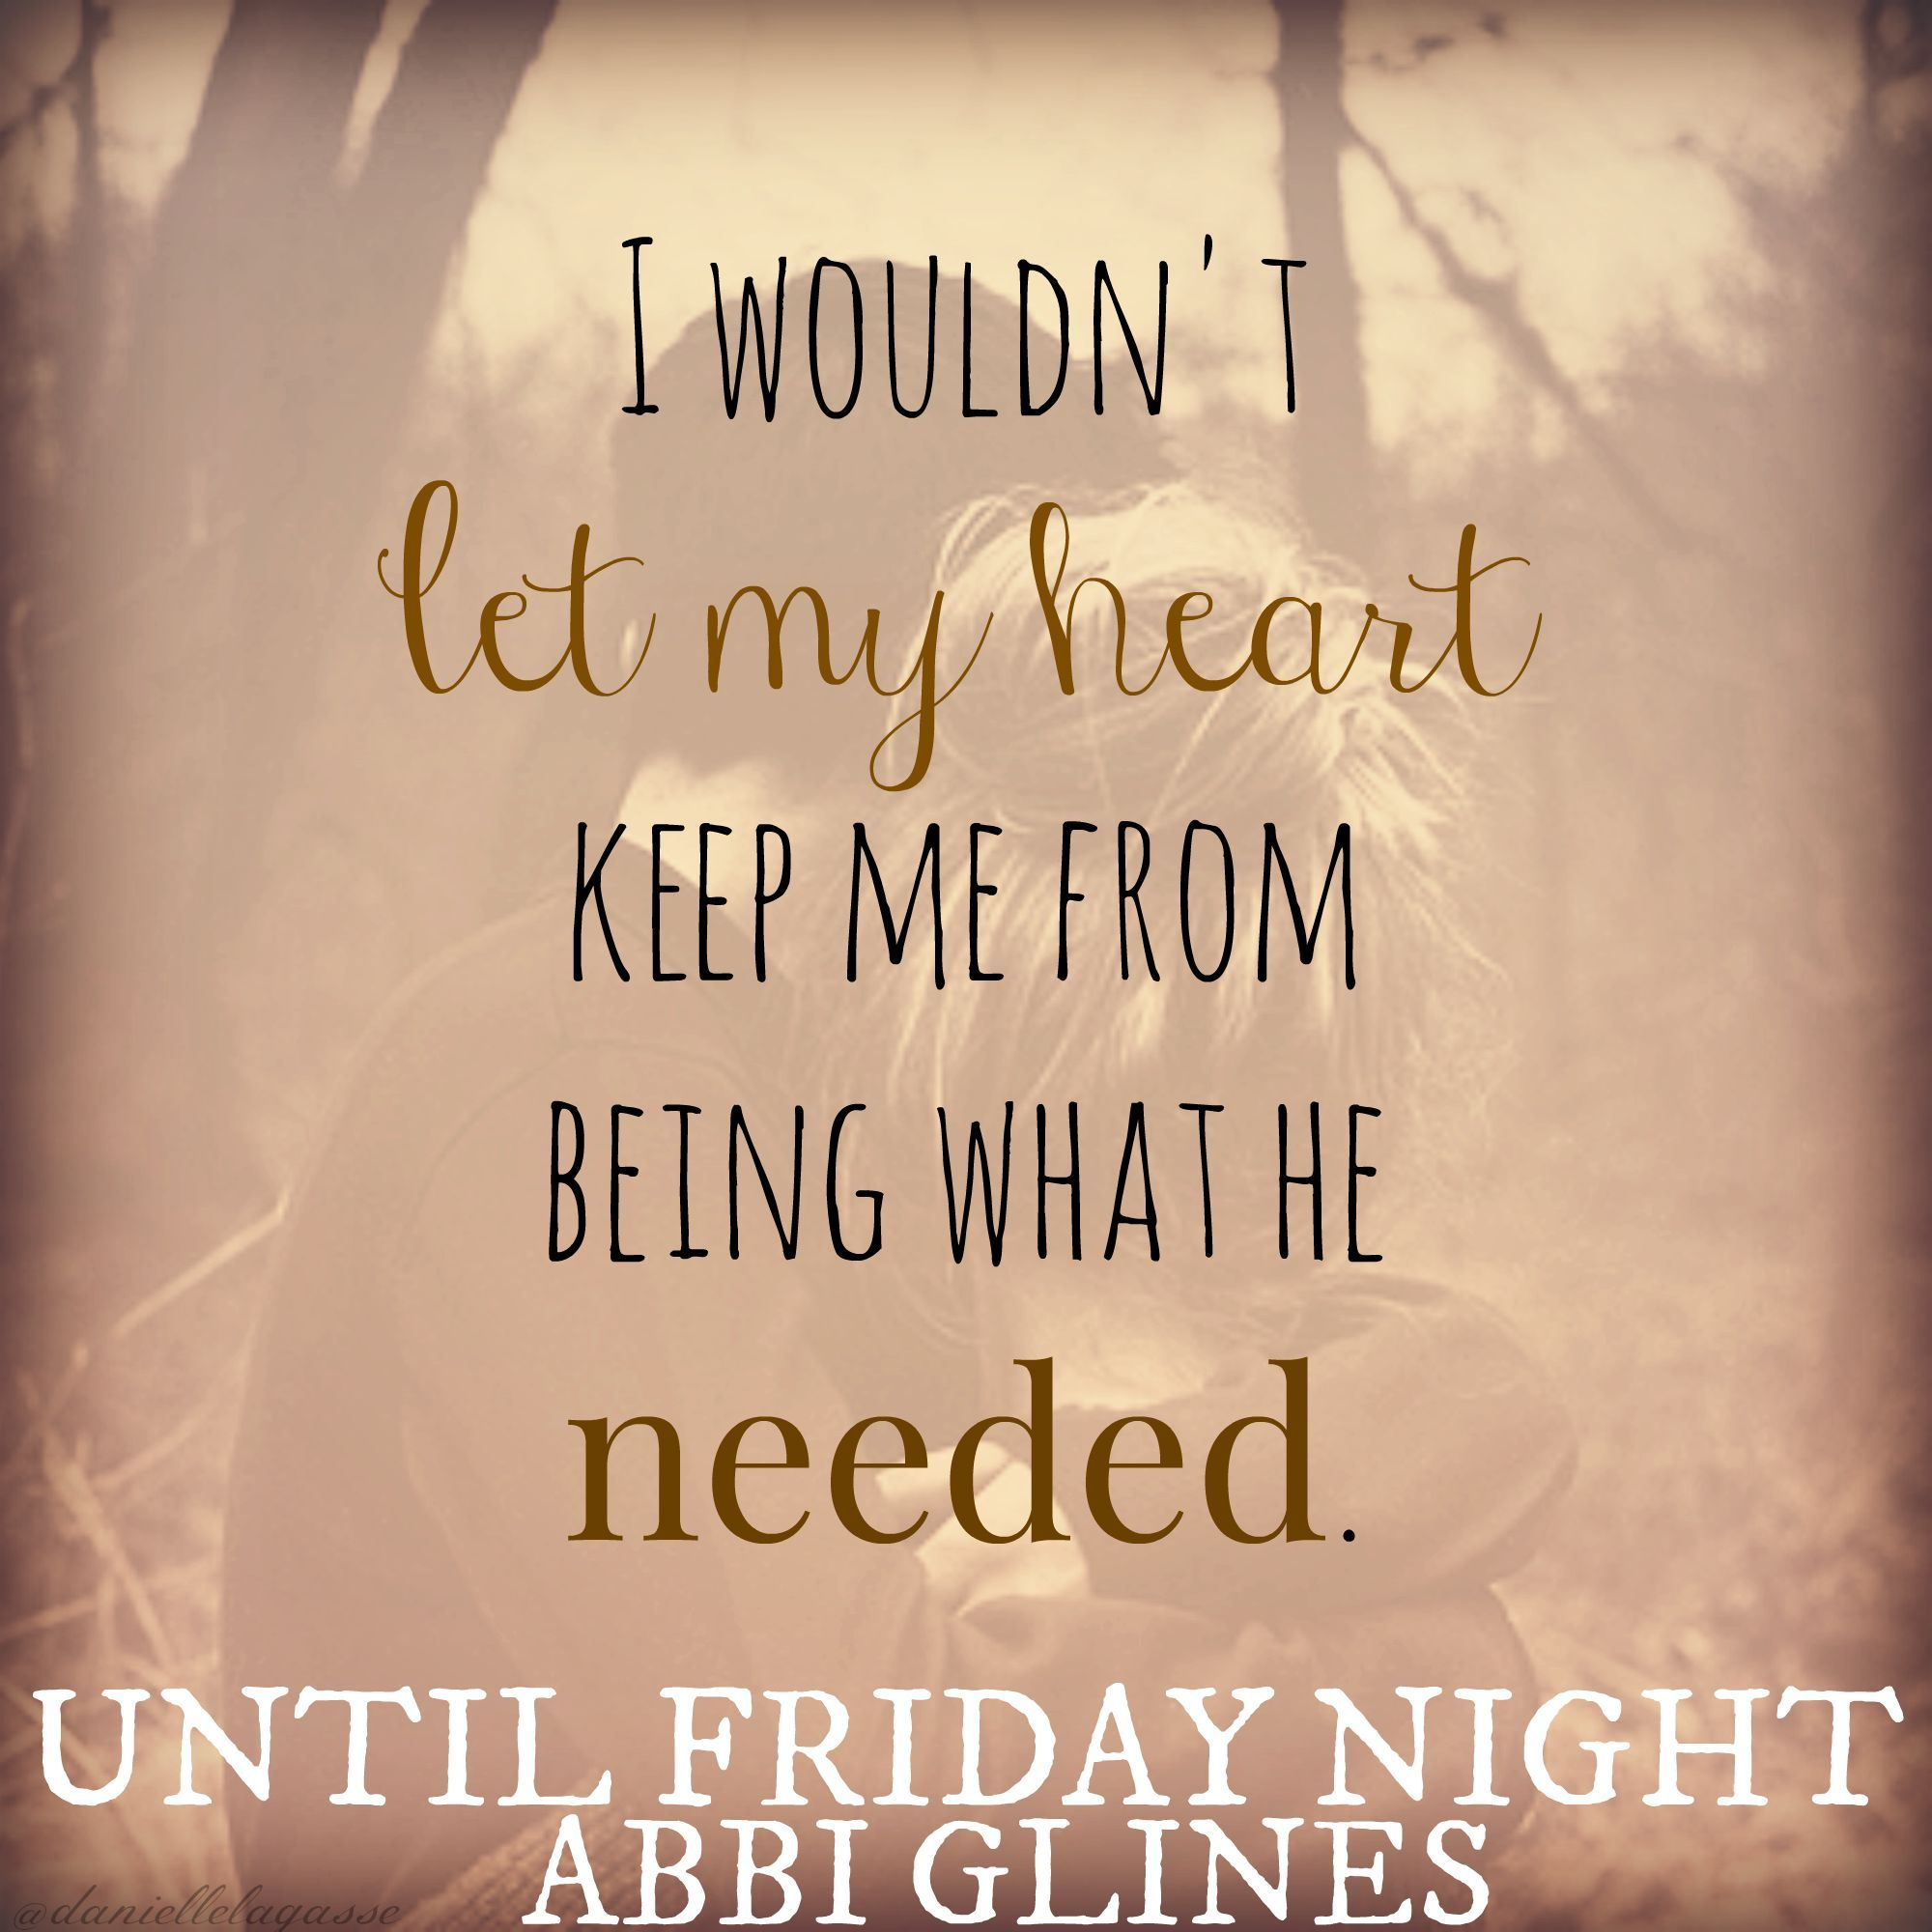 Until Friday Night By Abbi Glines Graphic Made By Danielle Lagasse Friday Night Quotes Friday Quotes Funny Happy Sunday Quotes